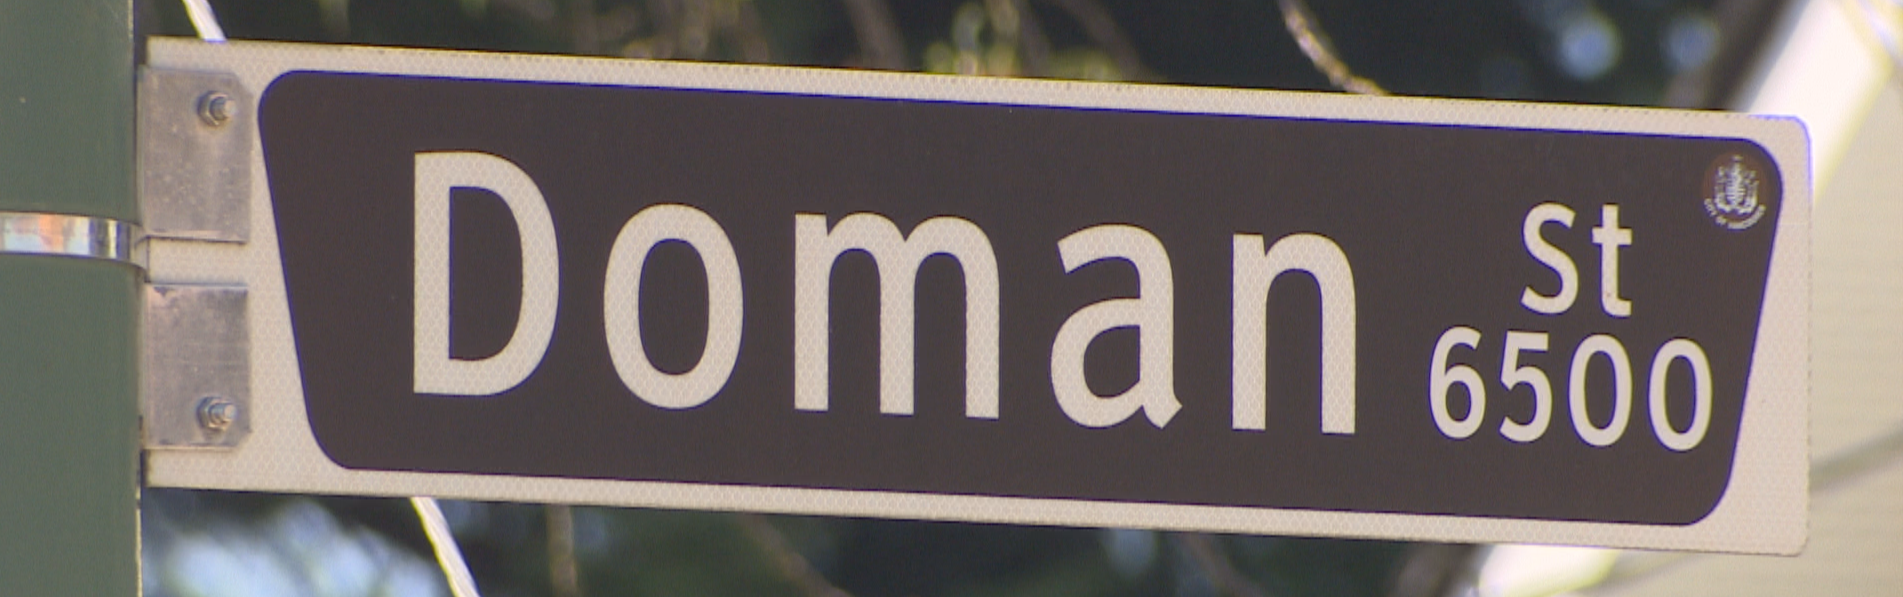 Doman is one of many streets in Vancouver named after a family that owned property in the surrounding area.